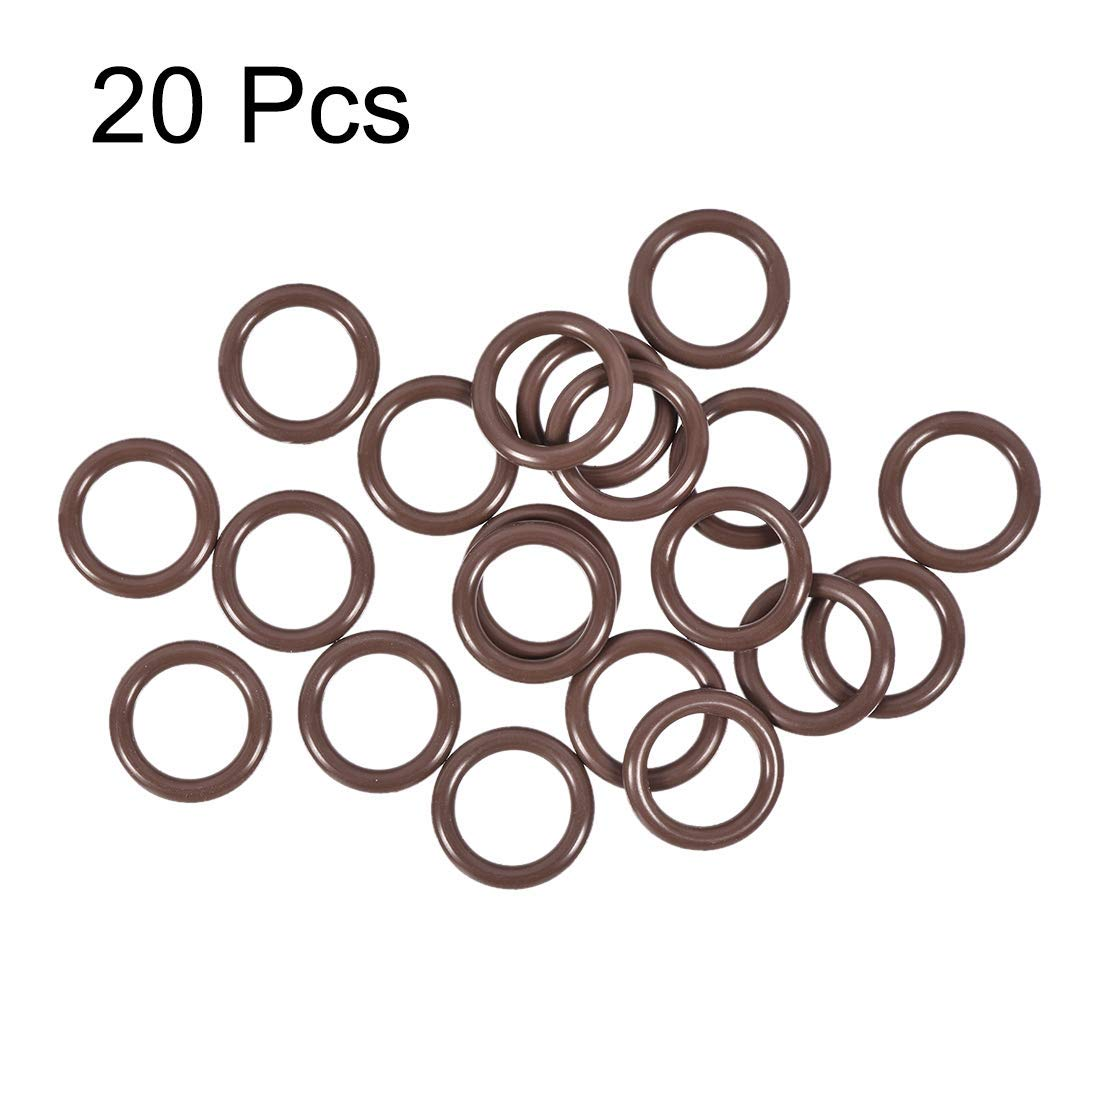 O-Ring Seals Buna-N; 11mm X 16mm X 2.5mm Width; Sealing Gasket Pack of 25